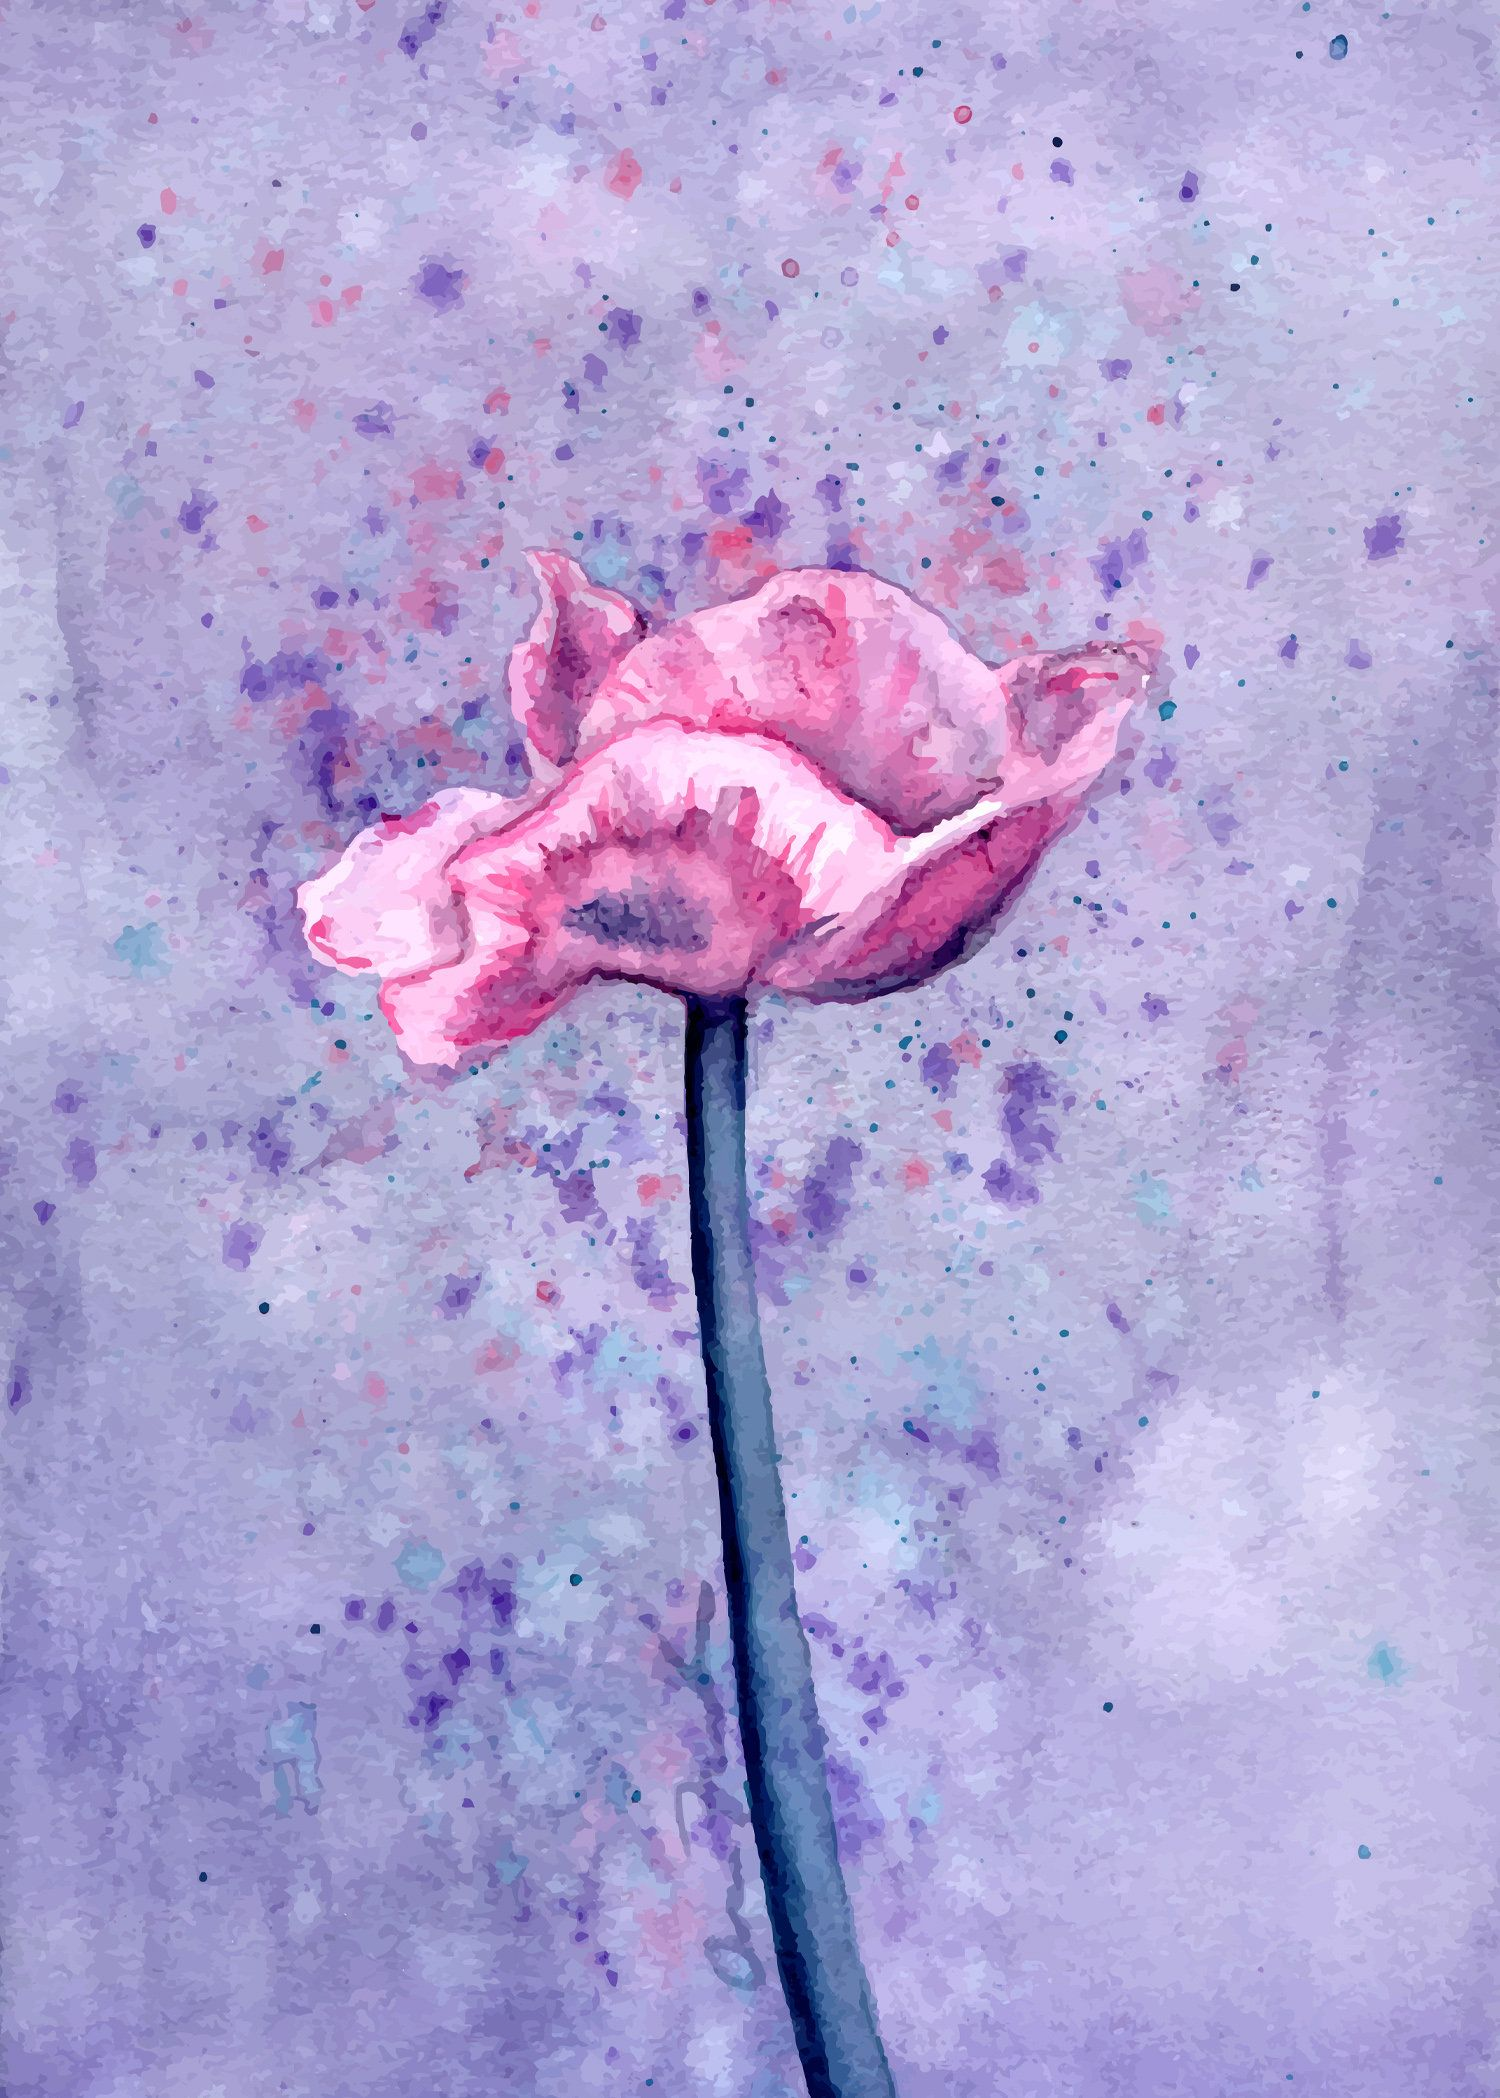 Pink Poppy With Lavender Background Flower Watercolor Art Print Matte Paper High Quality Pr Watercolor Flowers Paintings Watercolor Art Prints Flower Painting